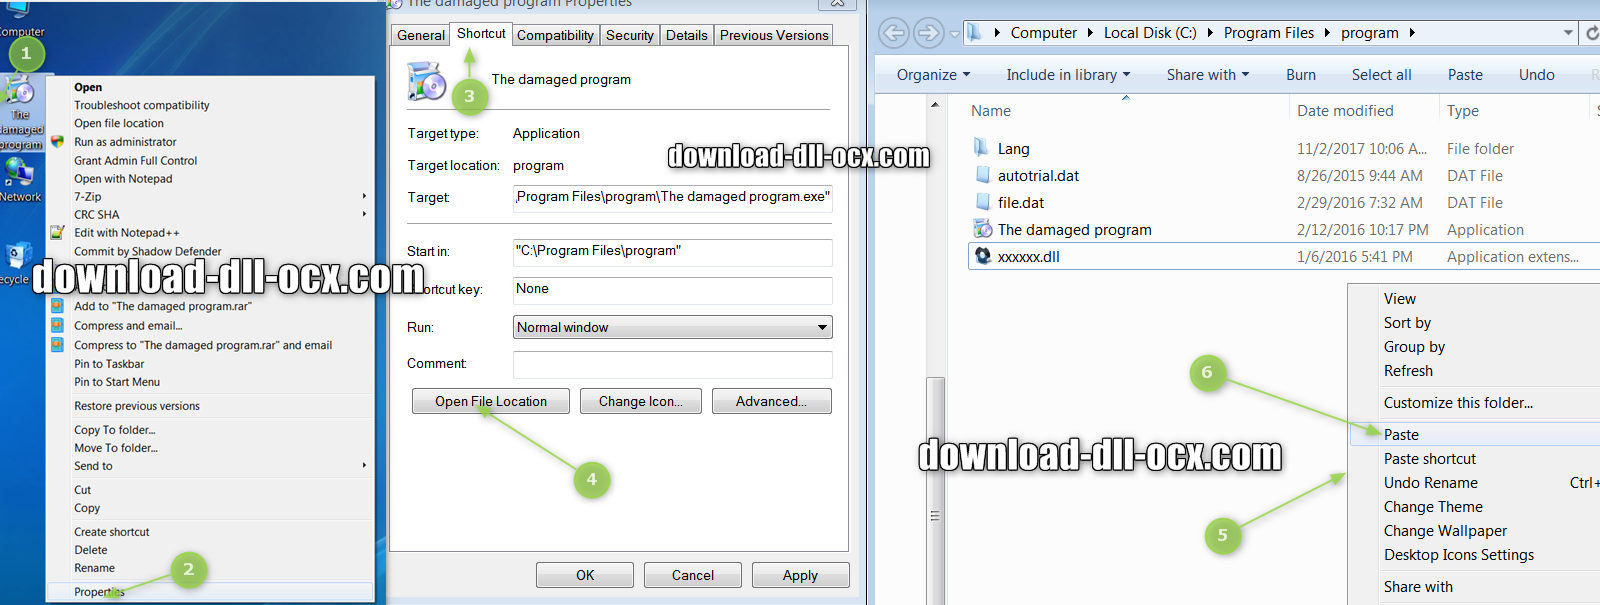 how to install olshared.dll file? for fix missing